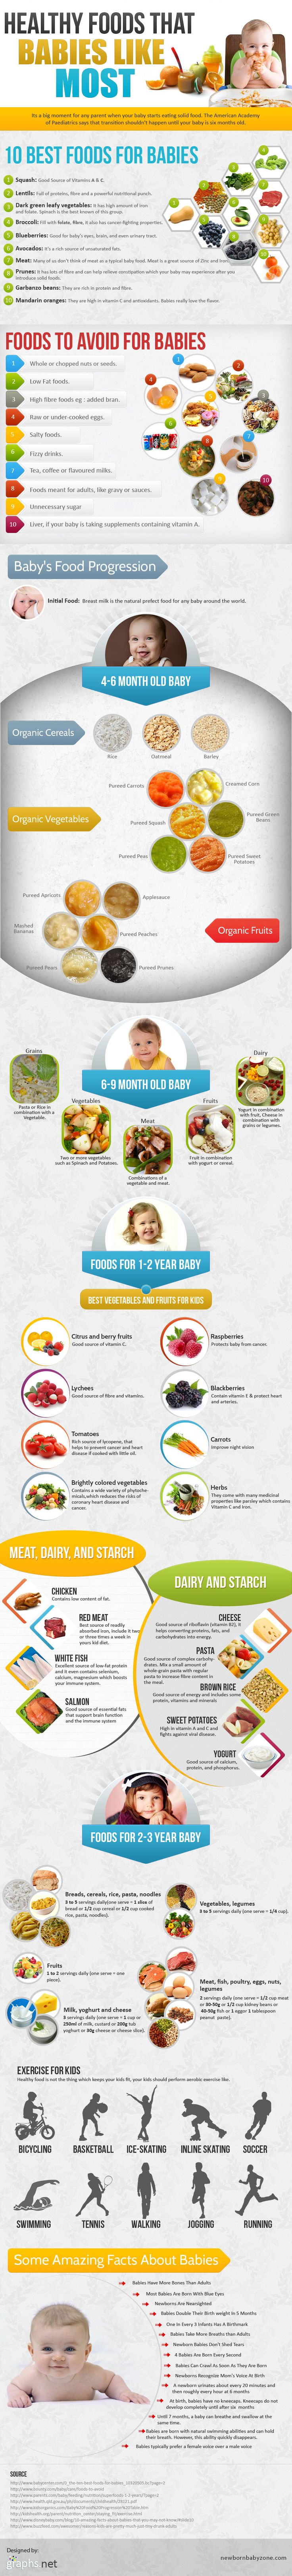 Baby food progression infographic